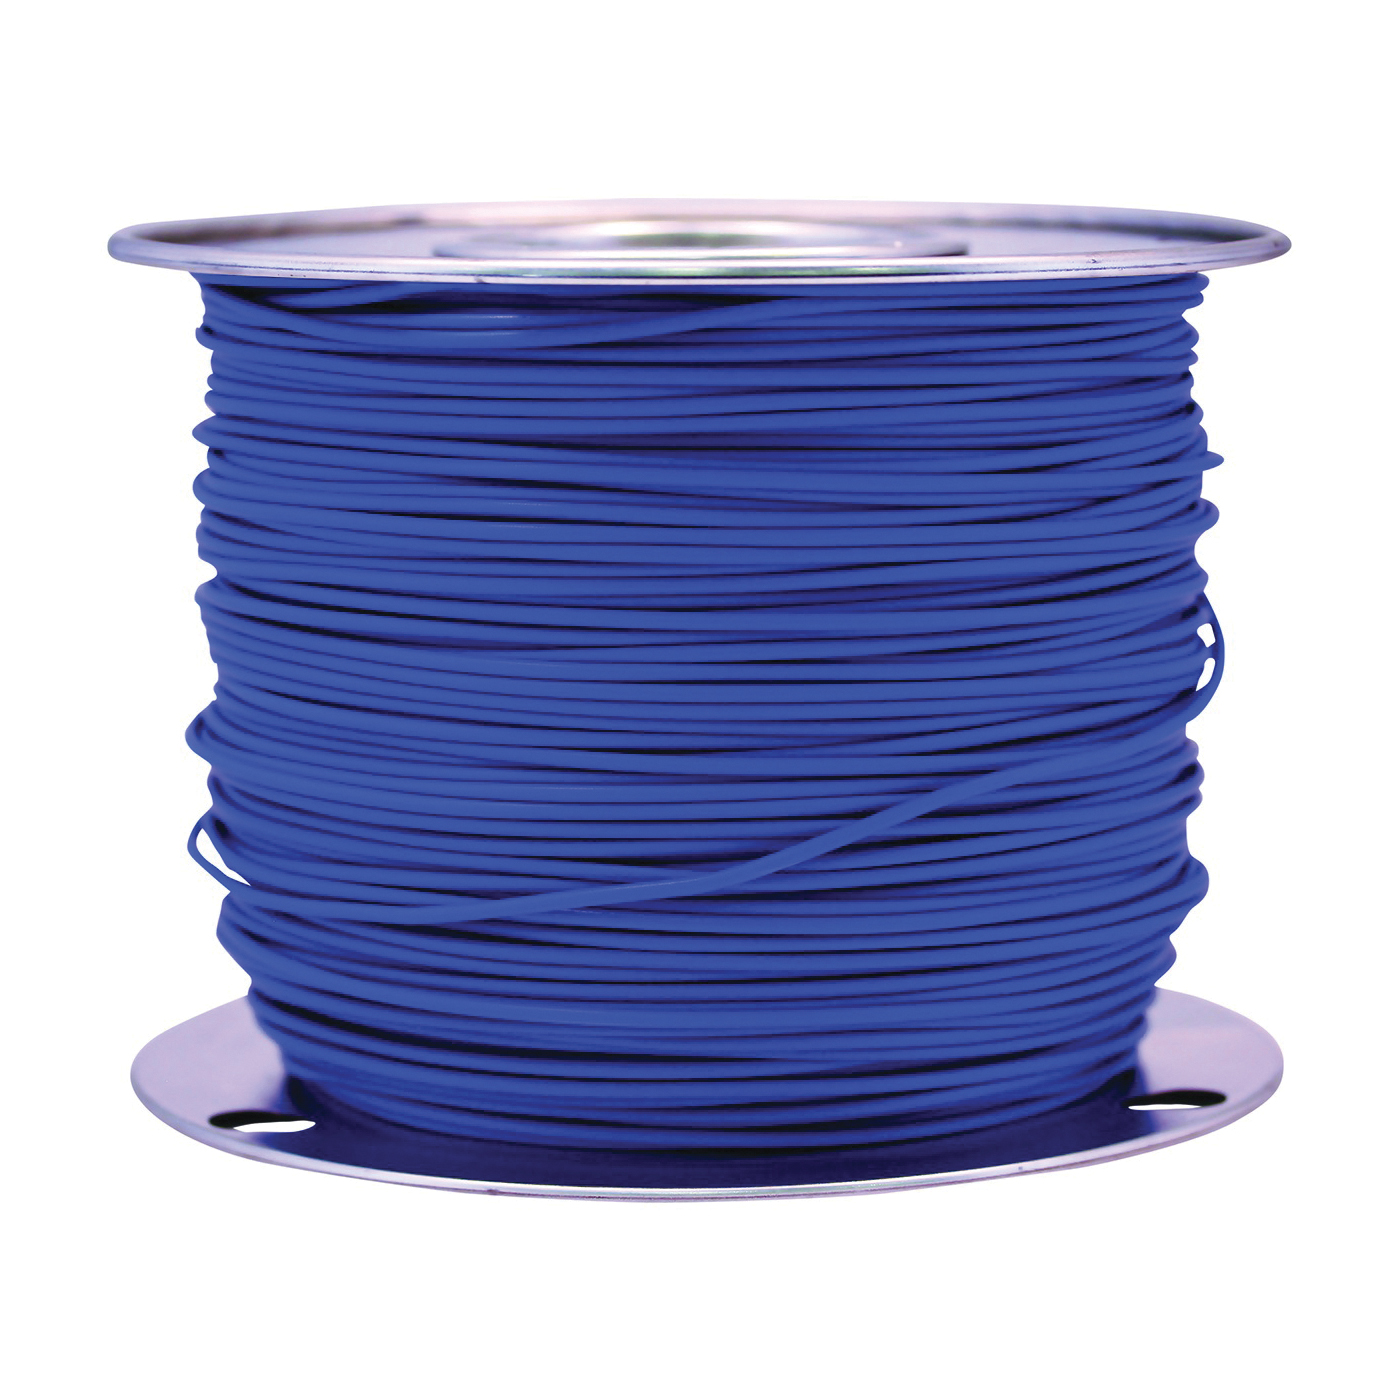 Picture of CCI 55879923 Primary Wire, 10 AWG Wire, 1 -Conductor, 60 VDC, Stranded Copper Conductor, Blue Sheath